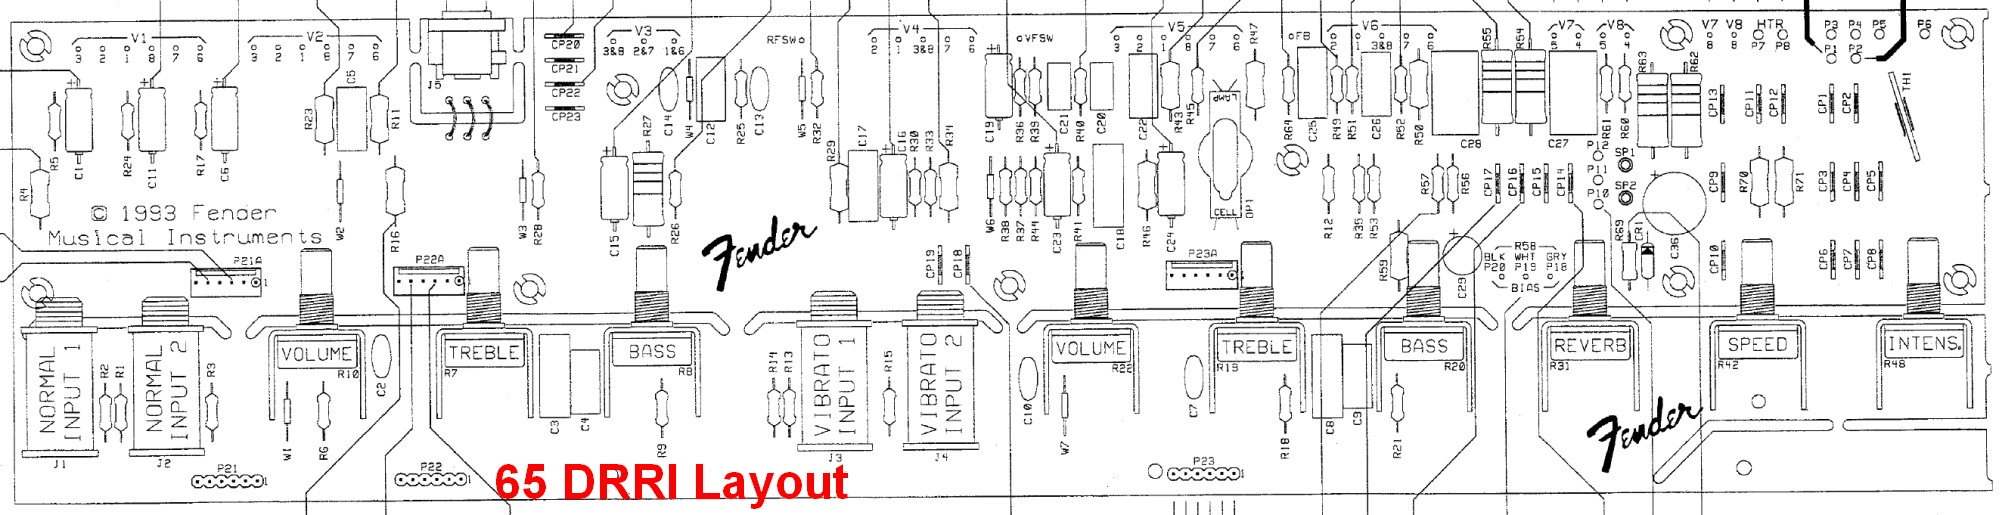 hight resolution of 65 deluxe reverb reissue pcb layout